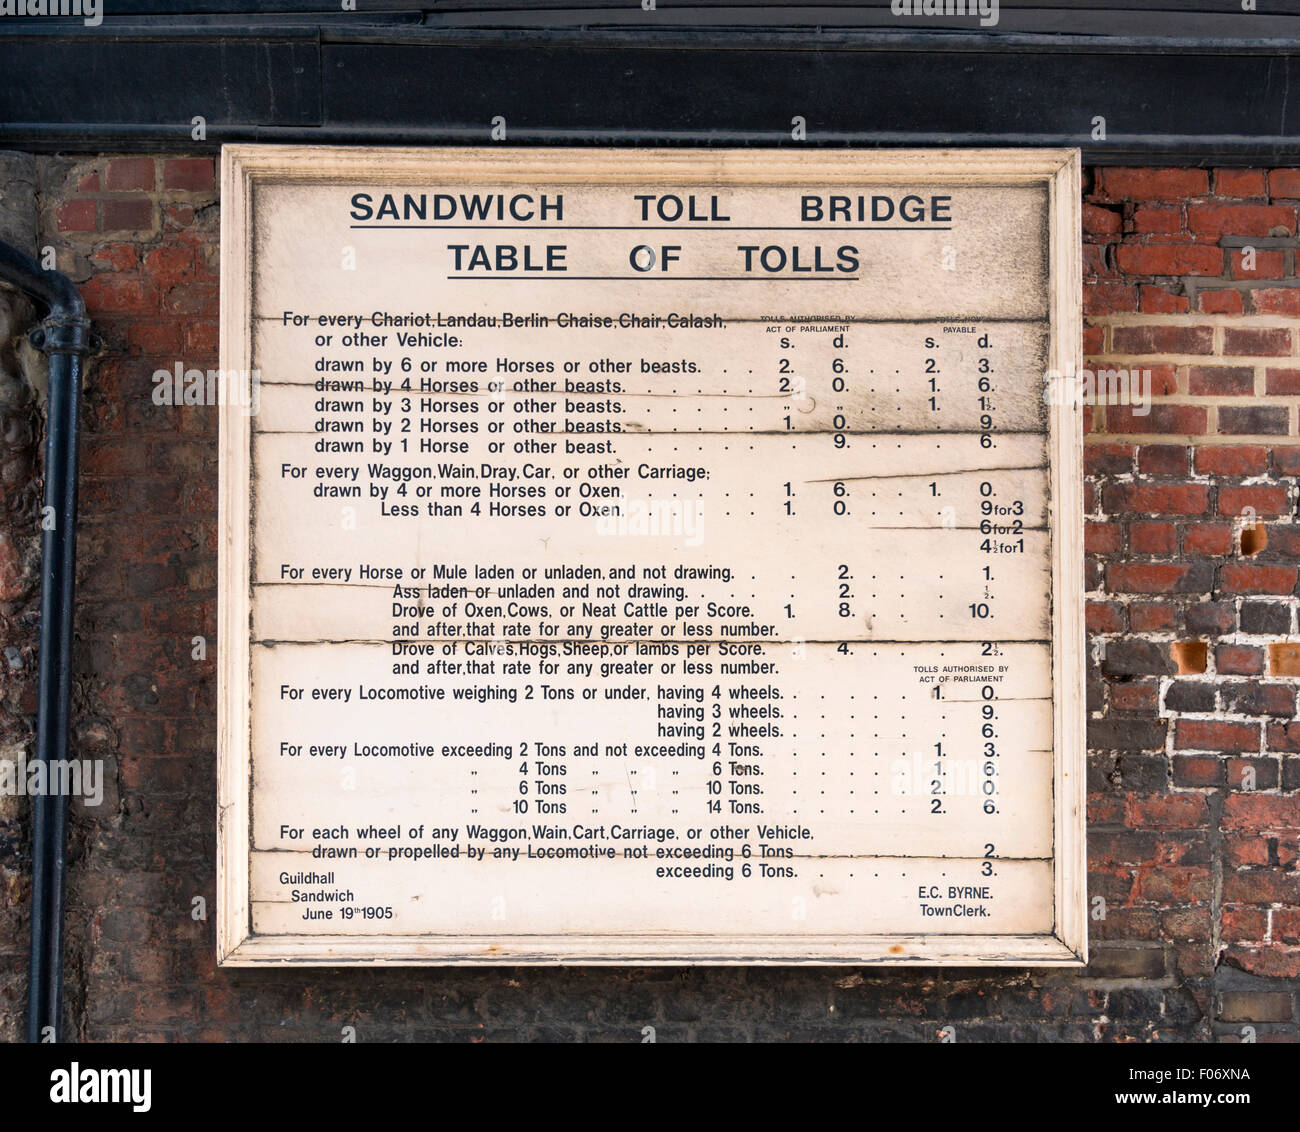 Sandwich toll bridge table of tolls from 1905 on the barbican over the river Stour Stock Photo